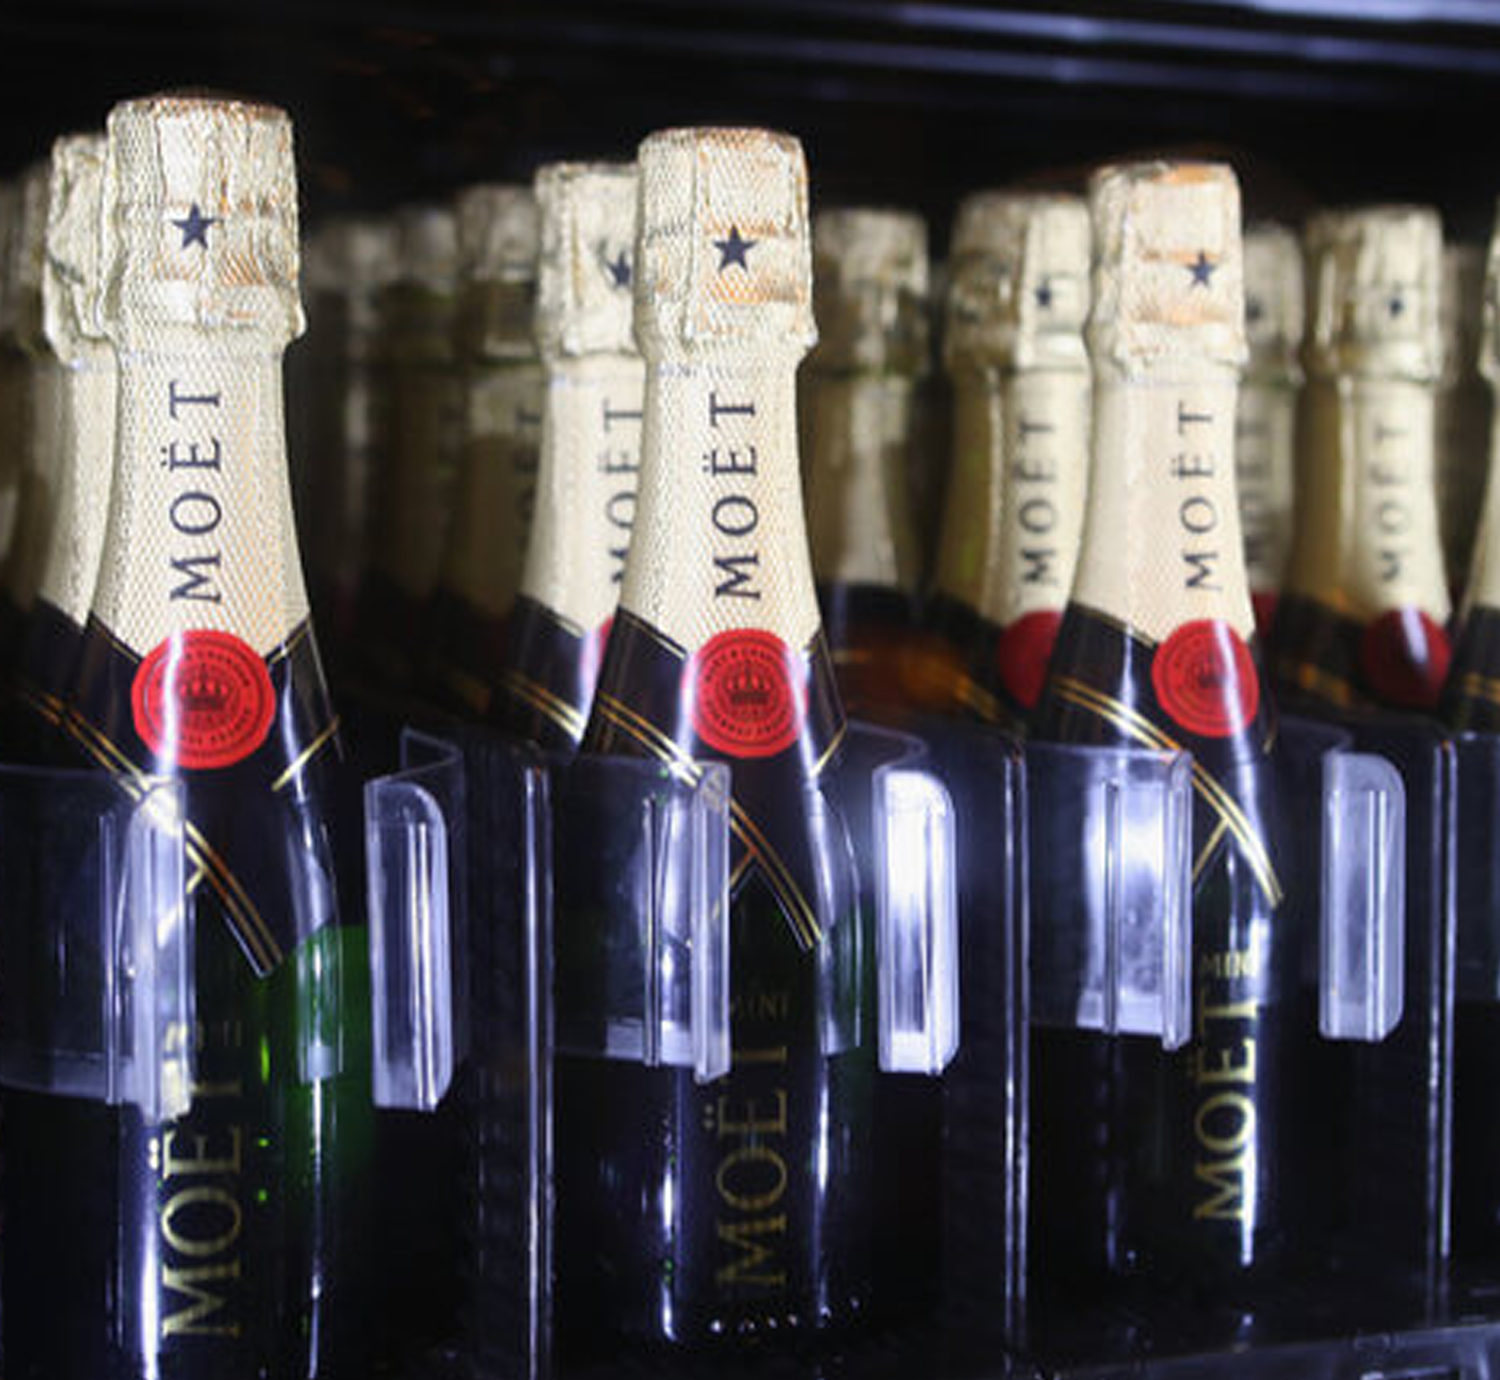 THE GOLD COAST WELCOMES AUSTRALIA'S FIRST CHAMPAGNE VENDING MACHINE -